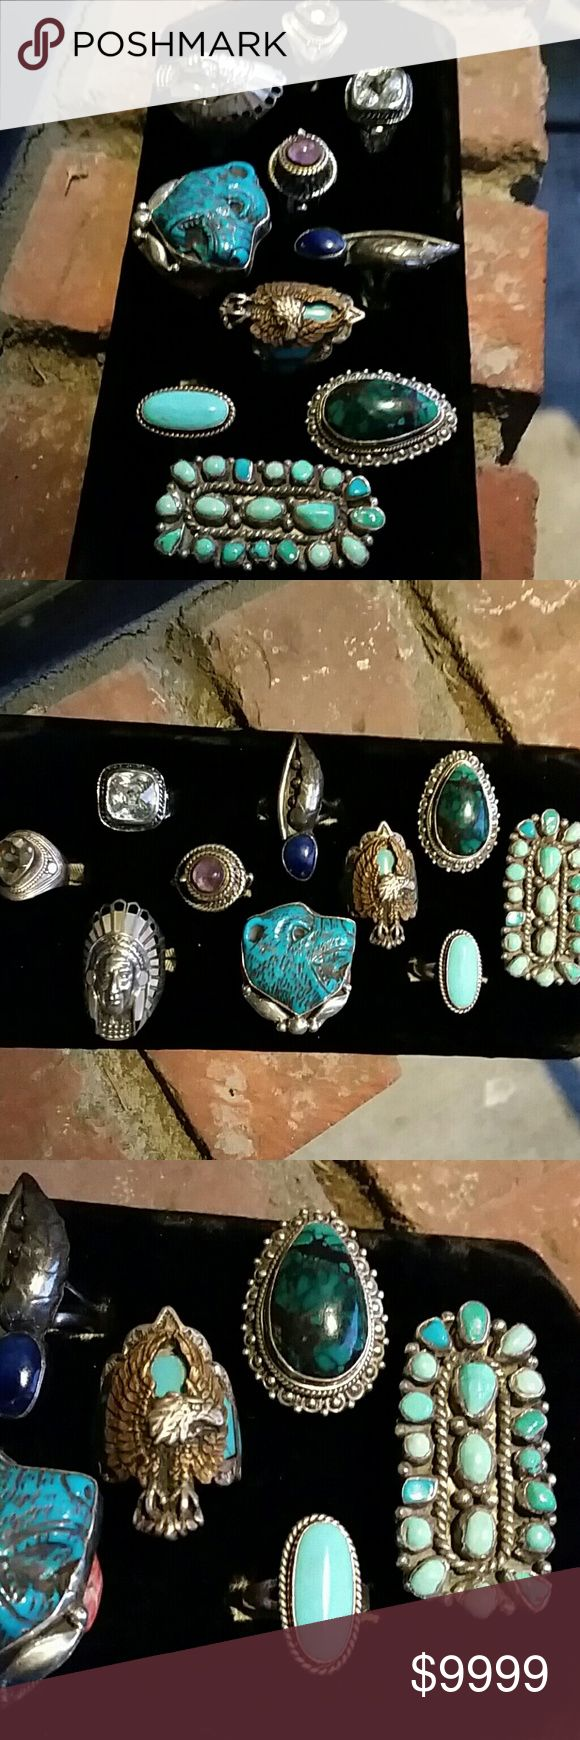 Sterling Silver Rings Turquoise Quartz Lapis This is an up-to-date photo of more rings that I have in stock individual pricing will be coming soon or more than likely it's already listed separately in my closet. Please ask me if you have any questions Vintage Jewelry Rings